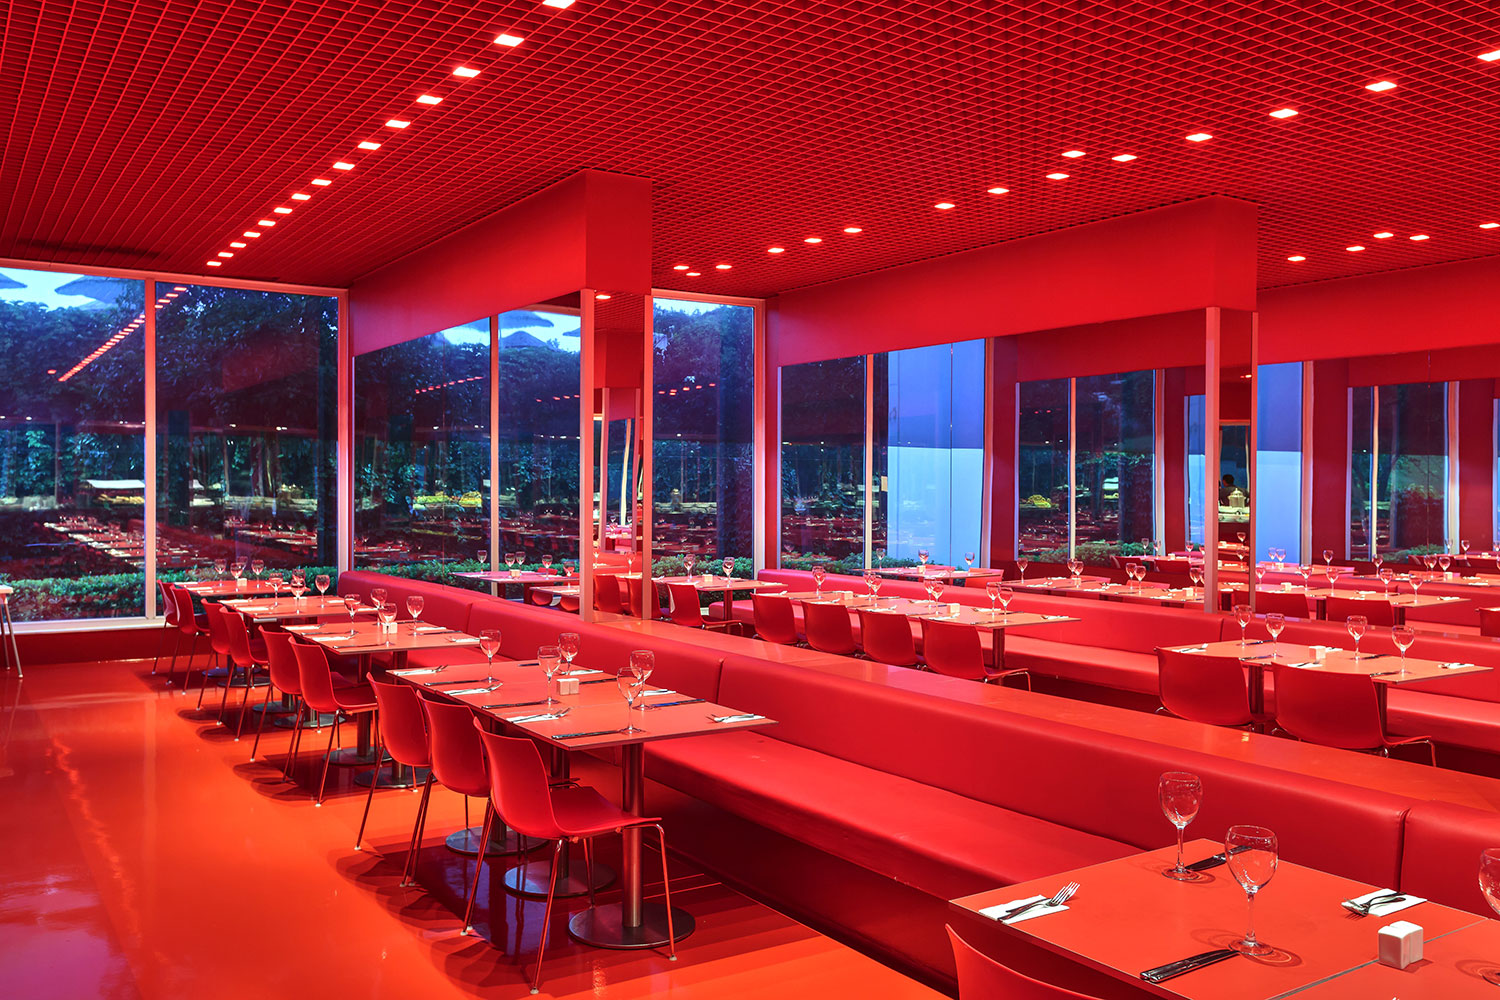 Image red_restaurant4.jpg